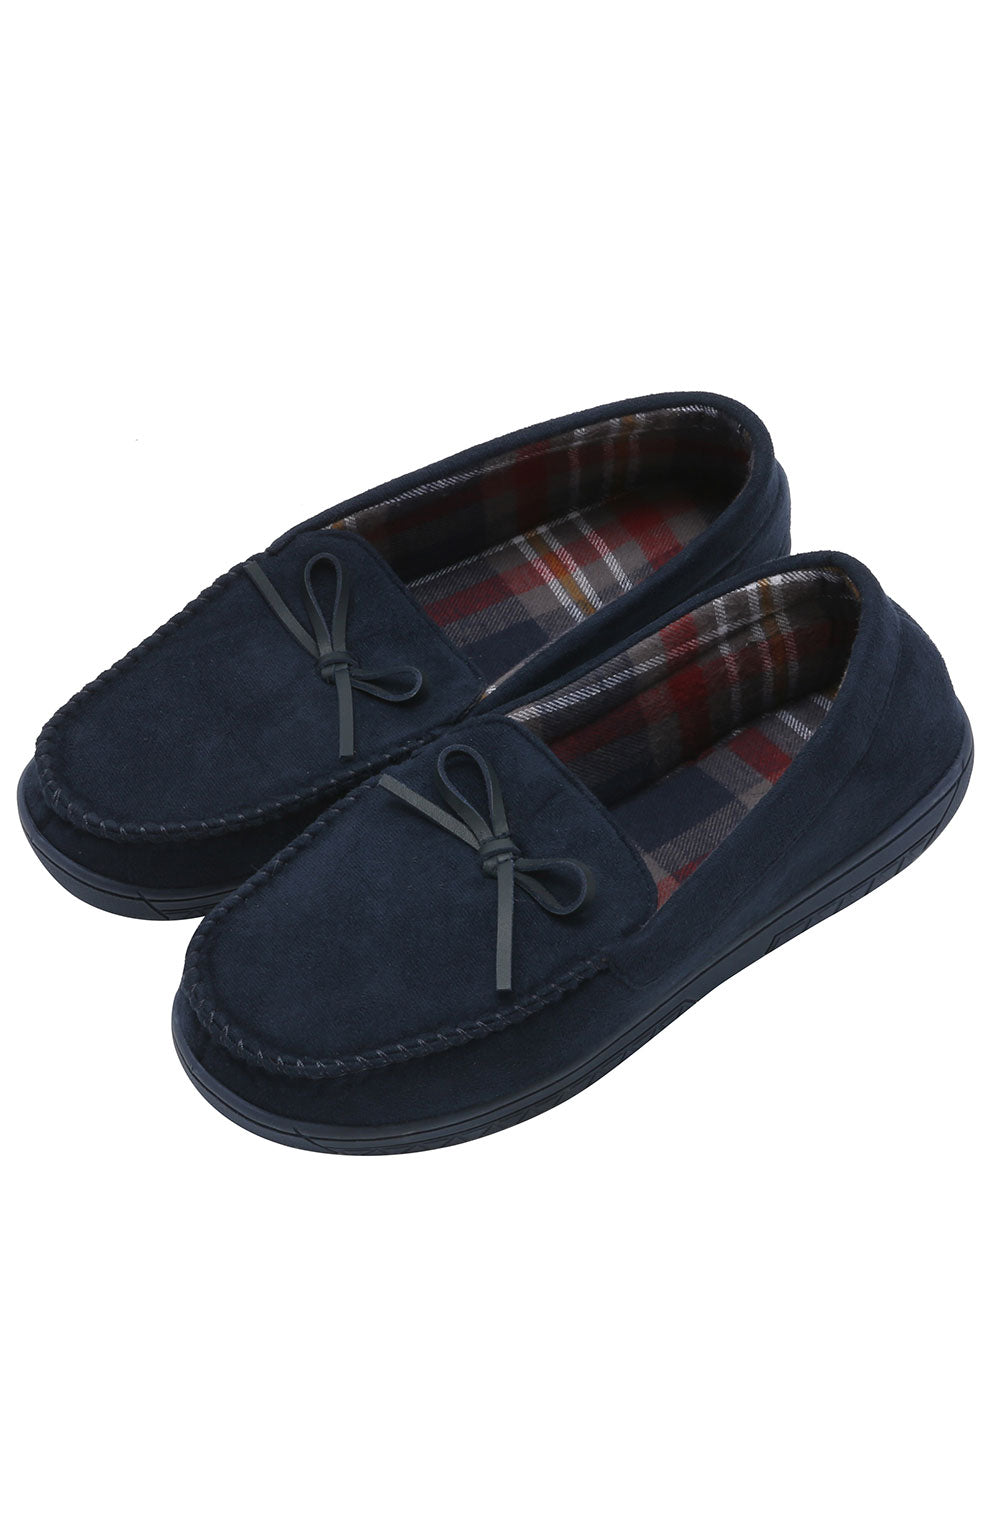 Navy Faux-Suede Moccasin Slipper - JACHS NY